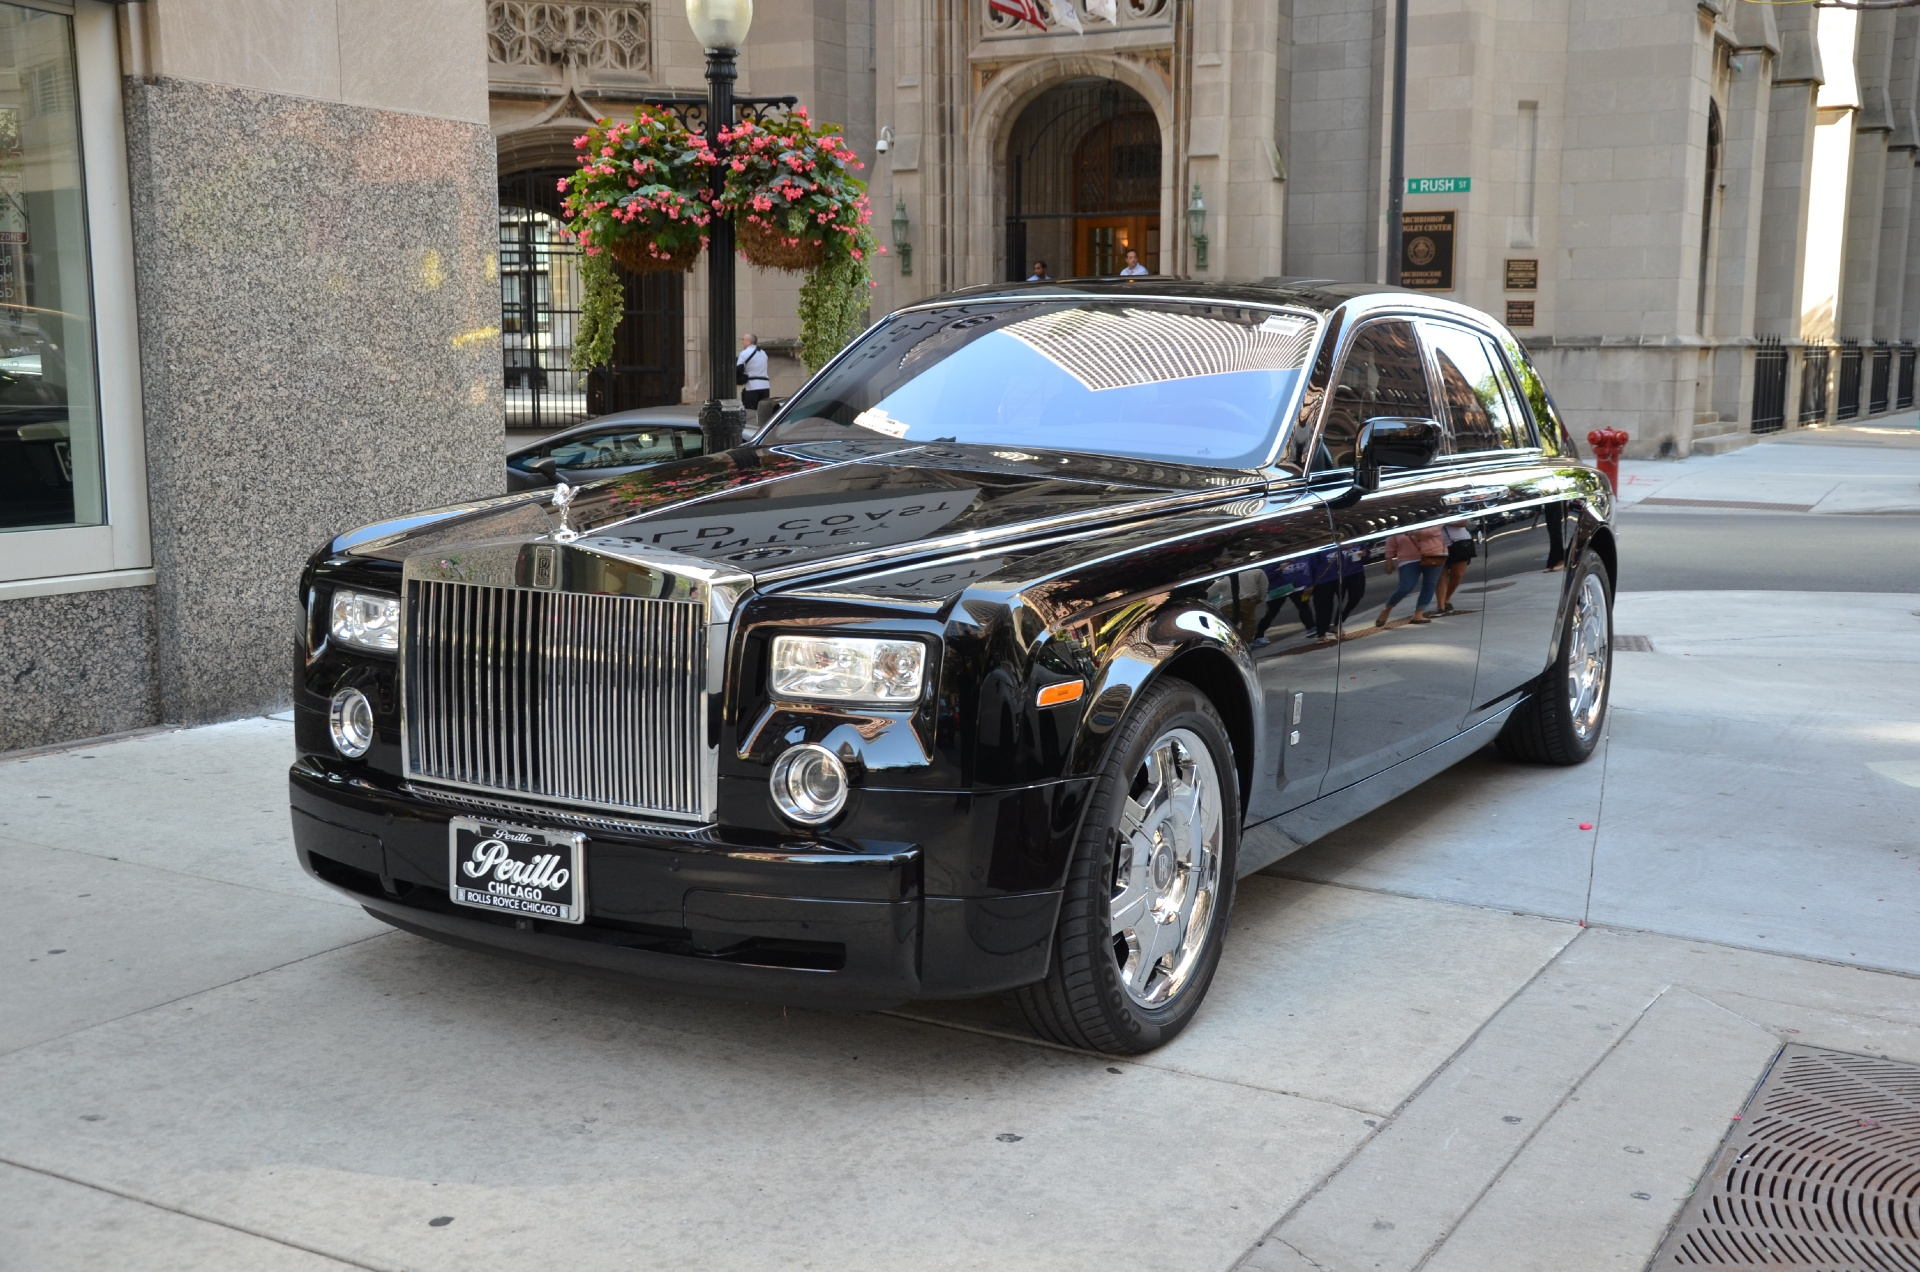 2008 Rolls royce Phantom #18